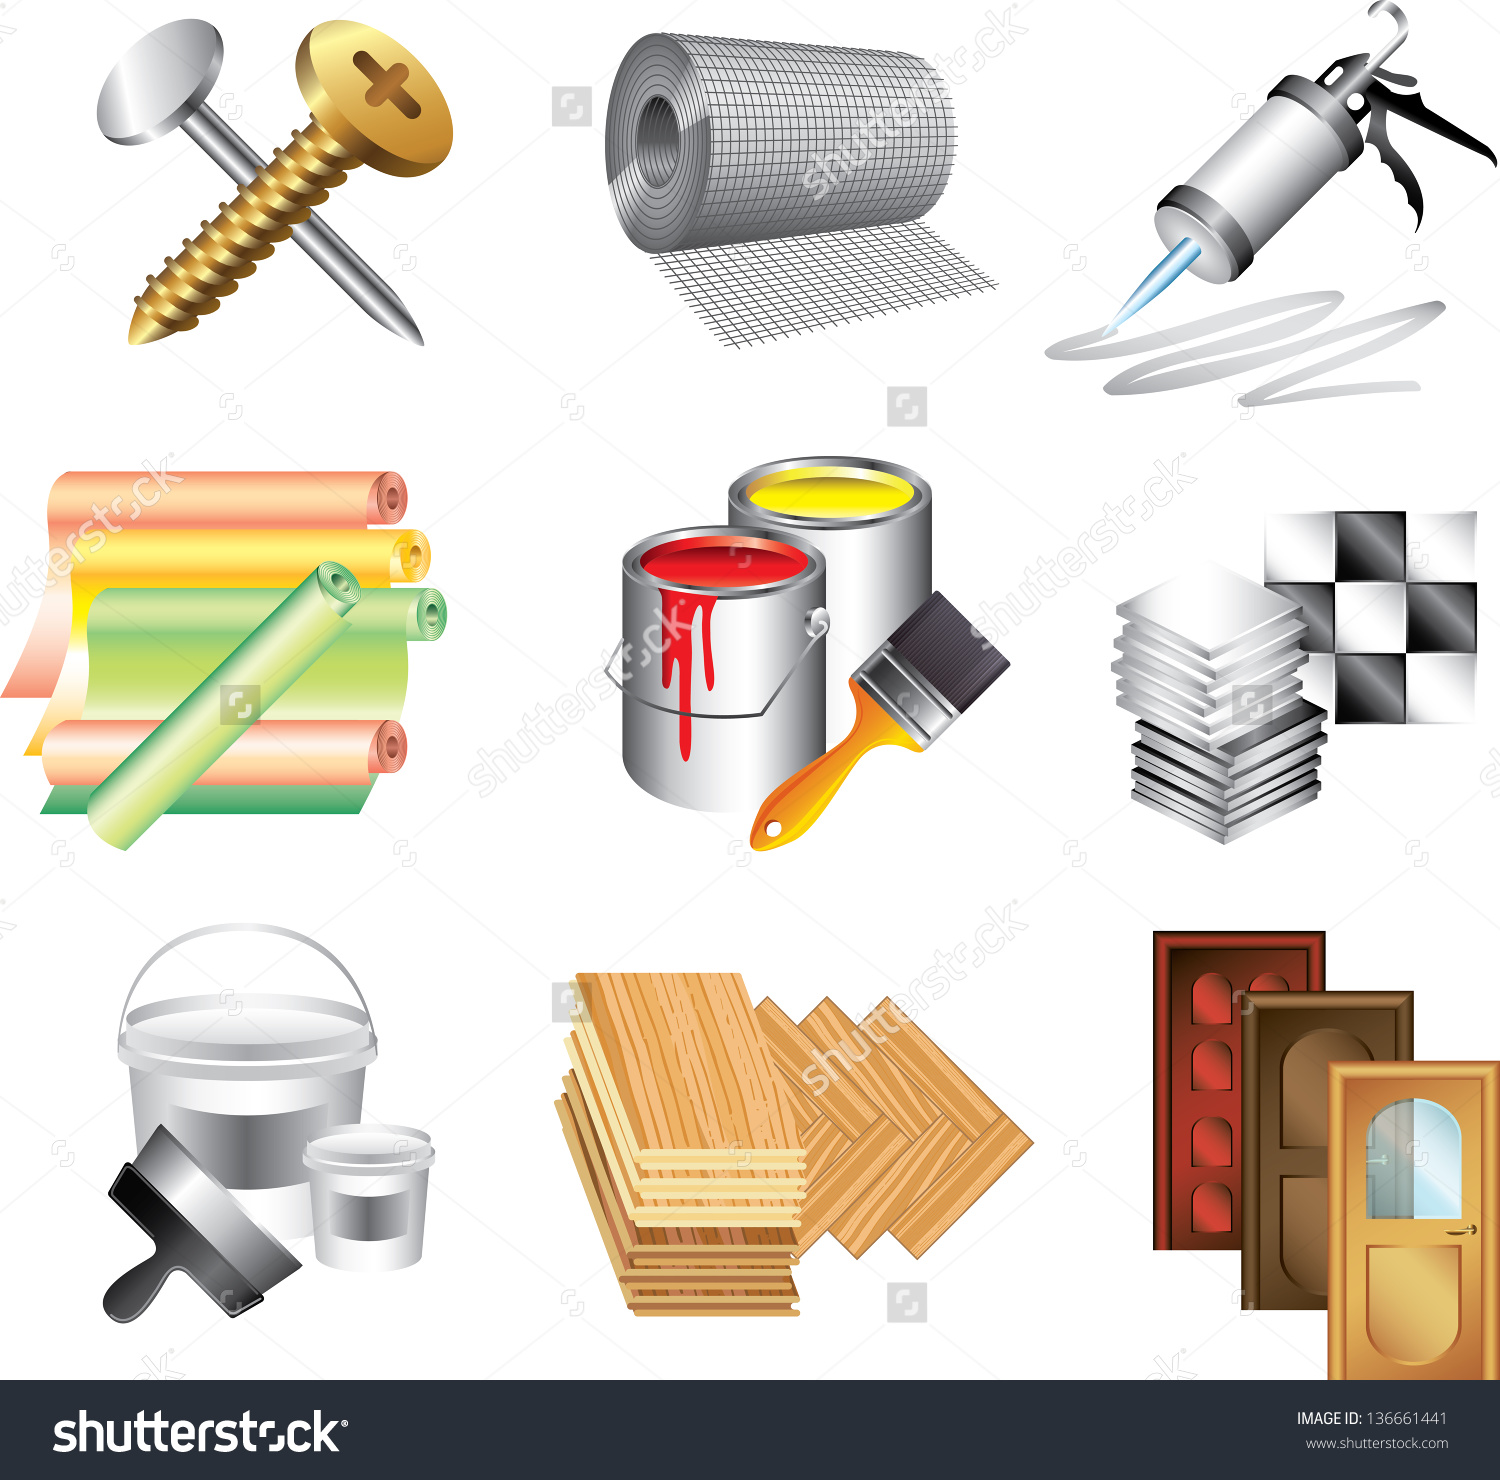 Building material clipart clipground for Waste material images